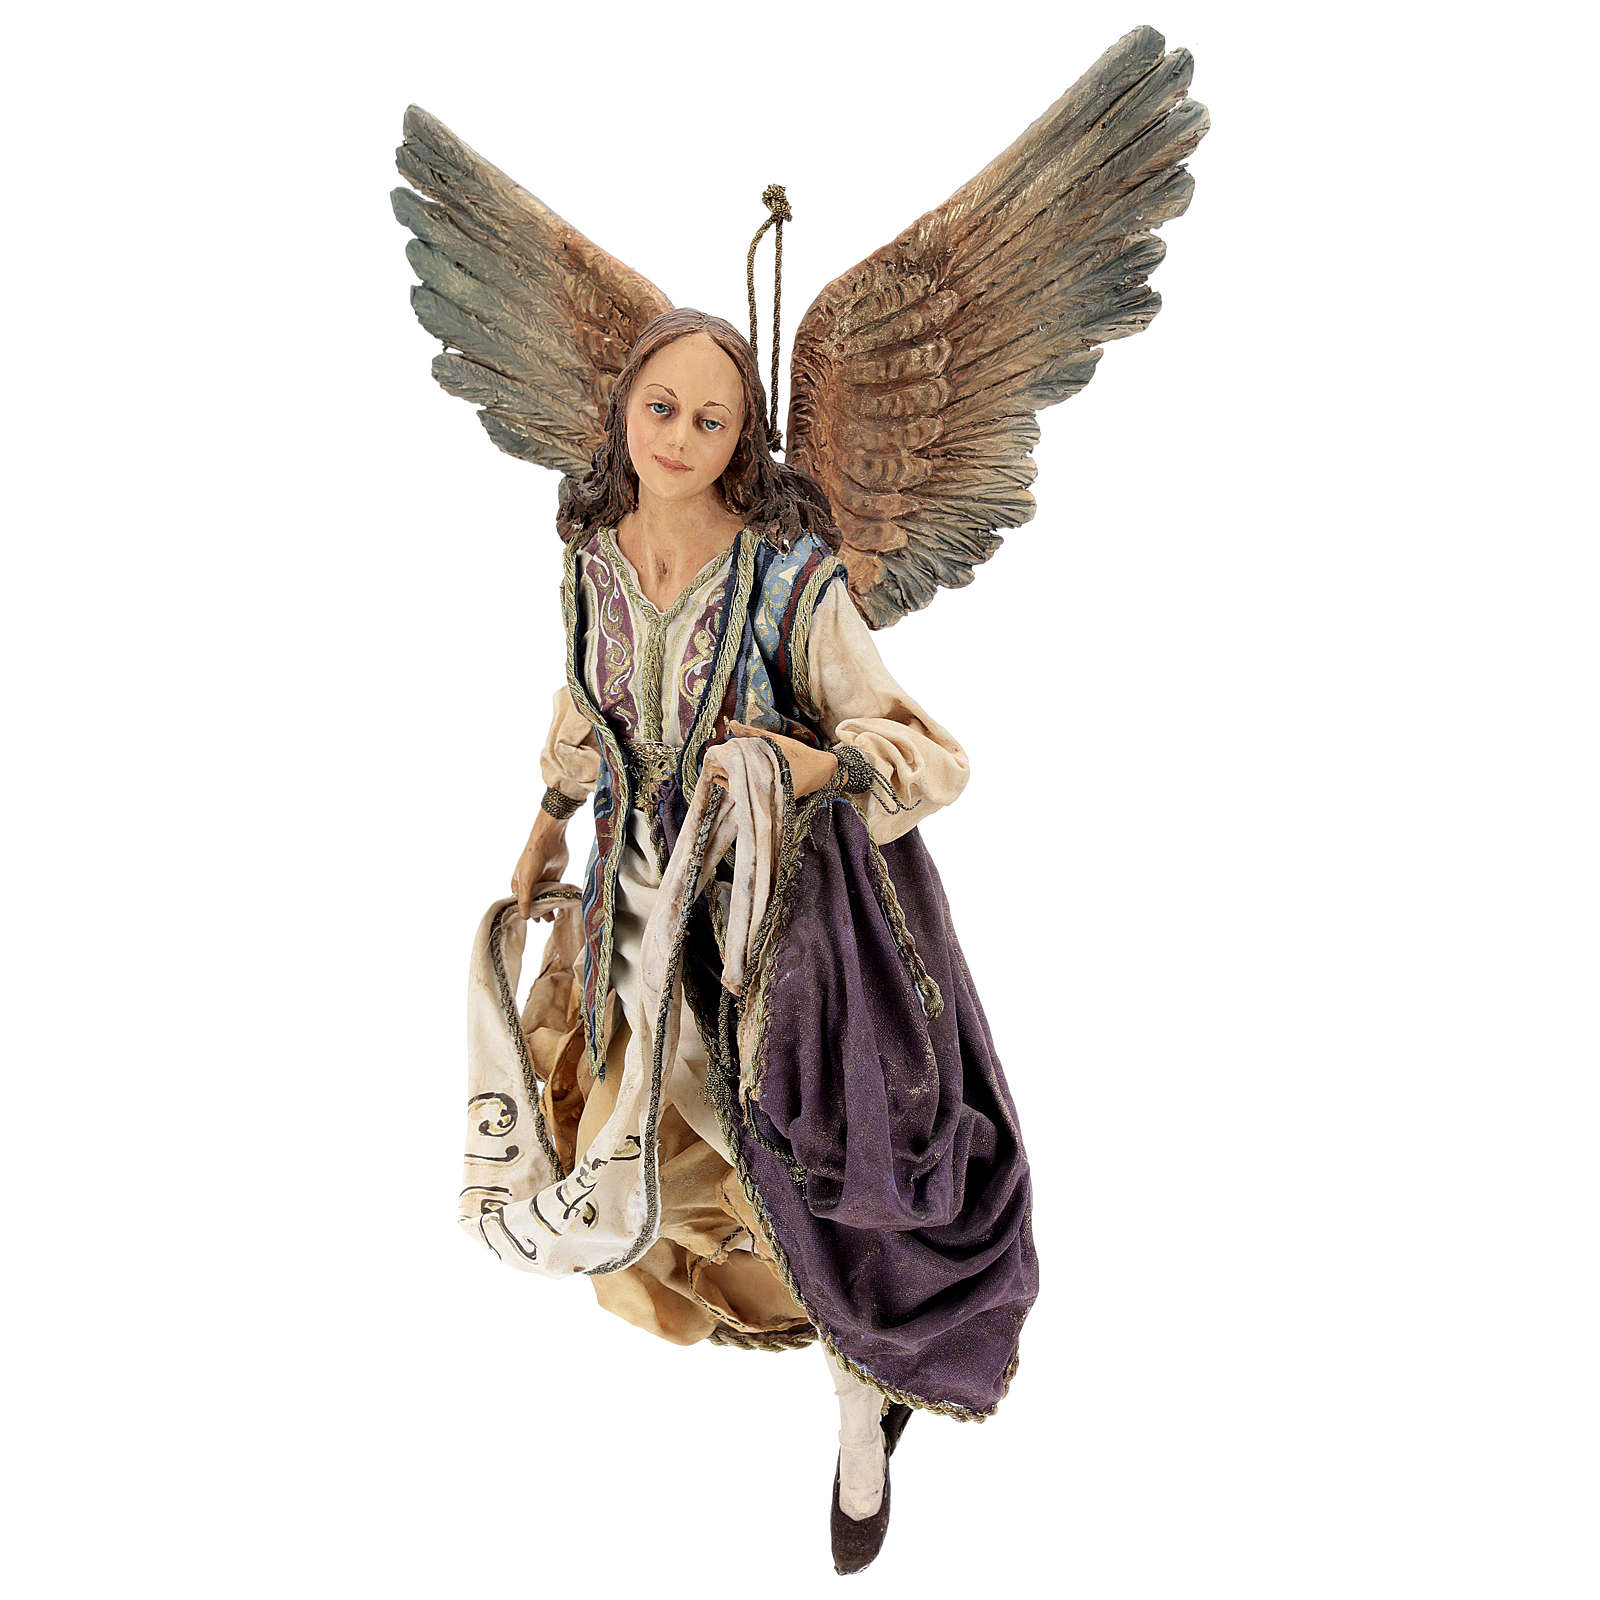 Nativity scene Angels with Gloria banners (two) by Angela Tripi 30 cm 4